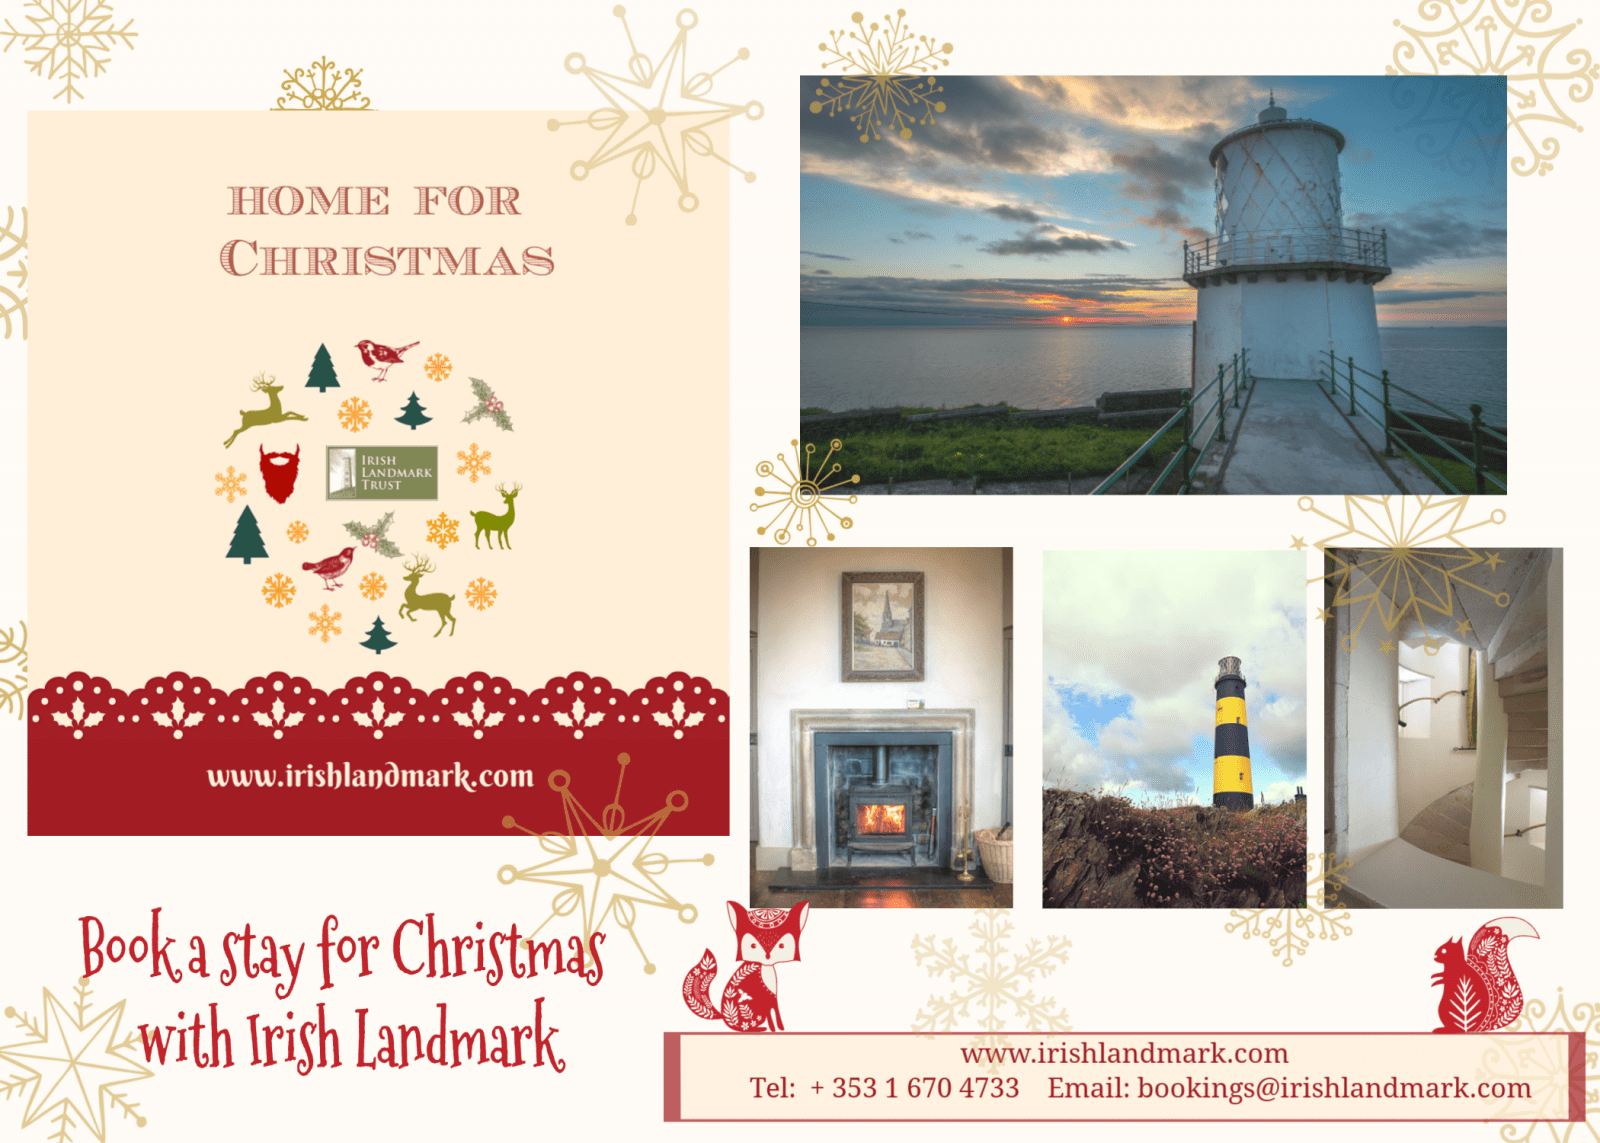 Stay with Irish Landmark this Christmas or New Year